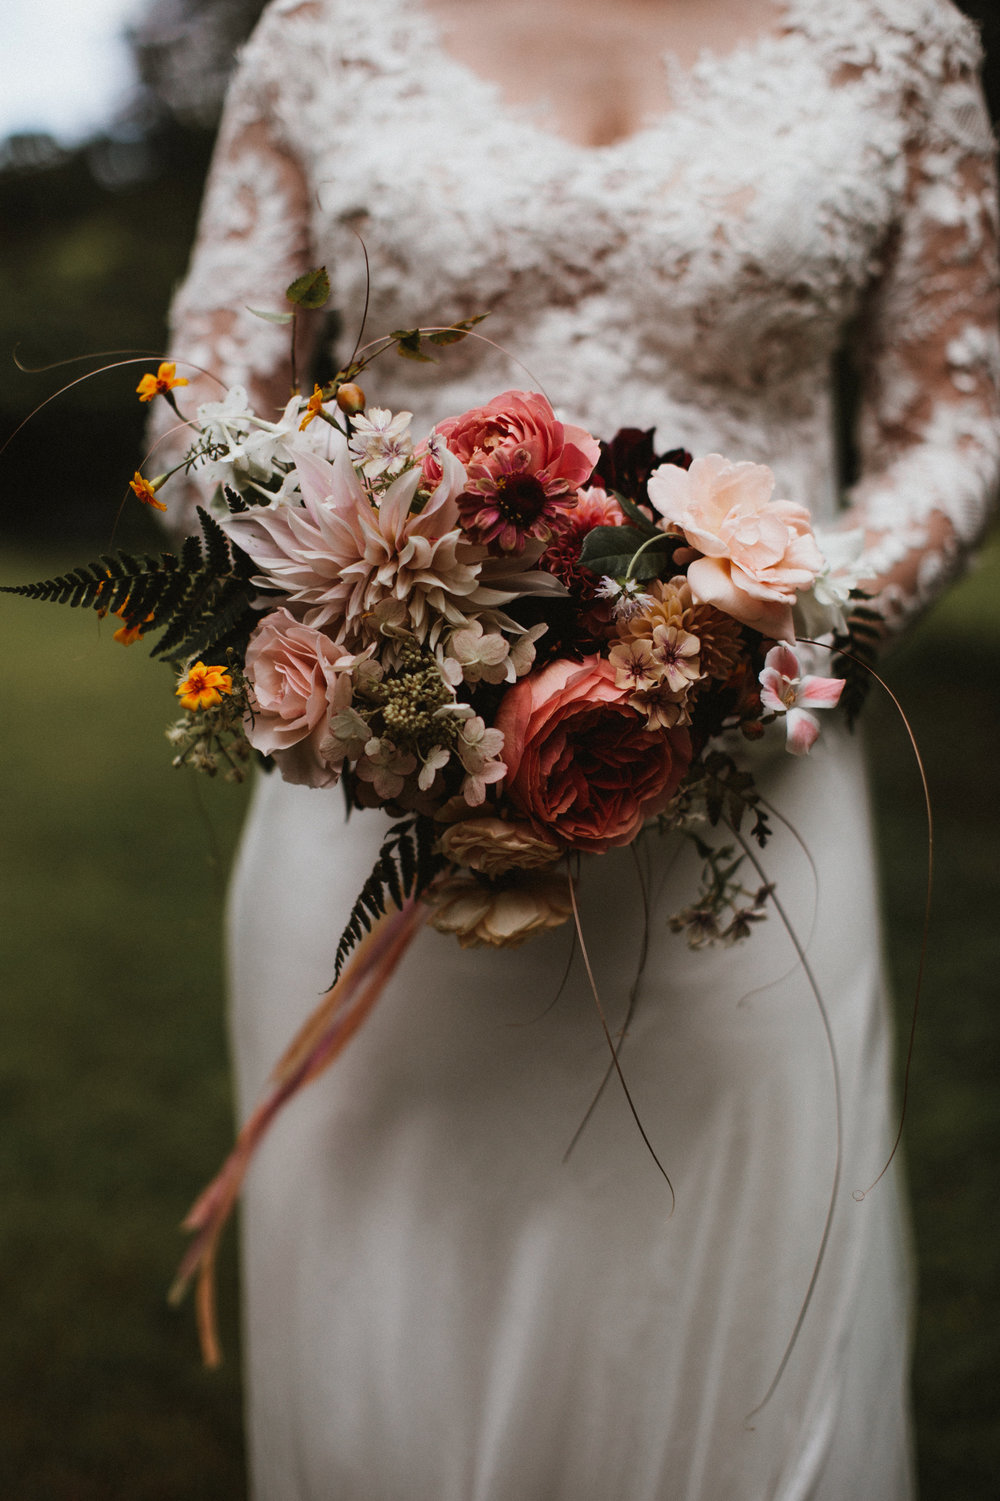 Rhona's ethereal gown called for a glamorous bouquet of 'Jubilee Celebration' roses, 'Cafe au Lait' dahlias, zinnias, godetia, Hydrangea paniculata, phlox 'Creme Brulee' and French marigolds. Photographed by  James Frost